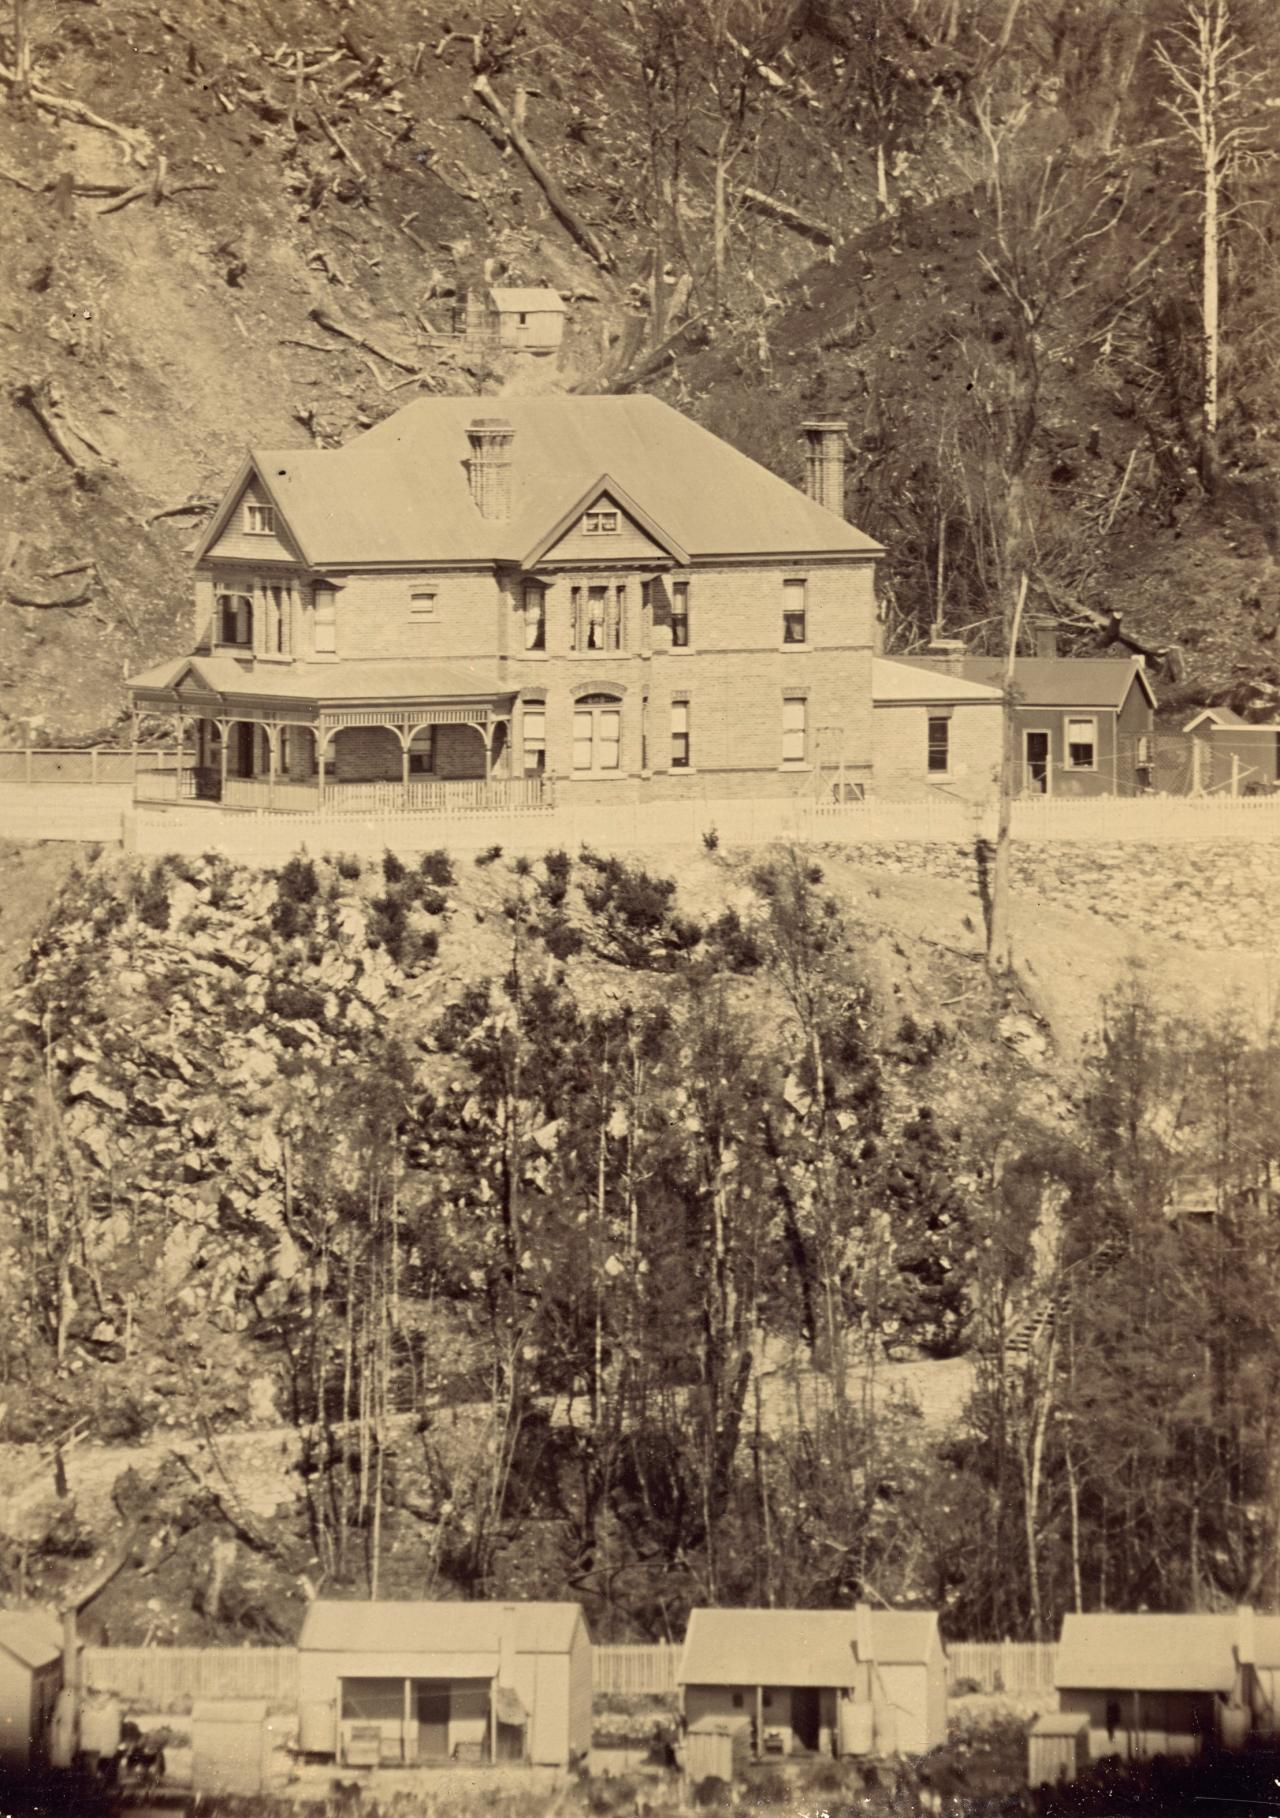 fig. 1 Penghana at the turn of the century, before the garden was established or new wings added to the residence.